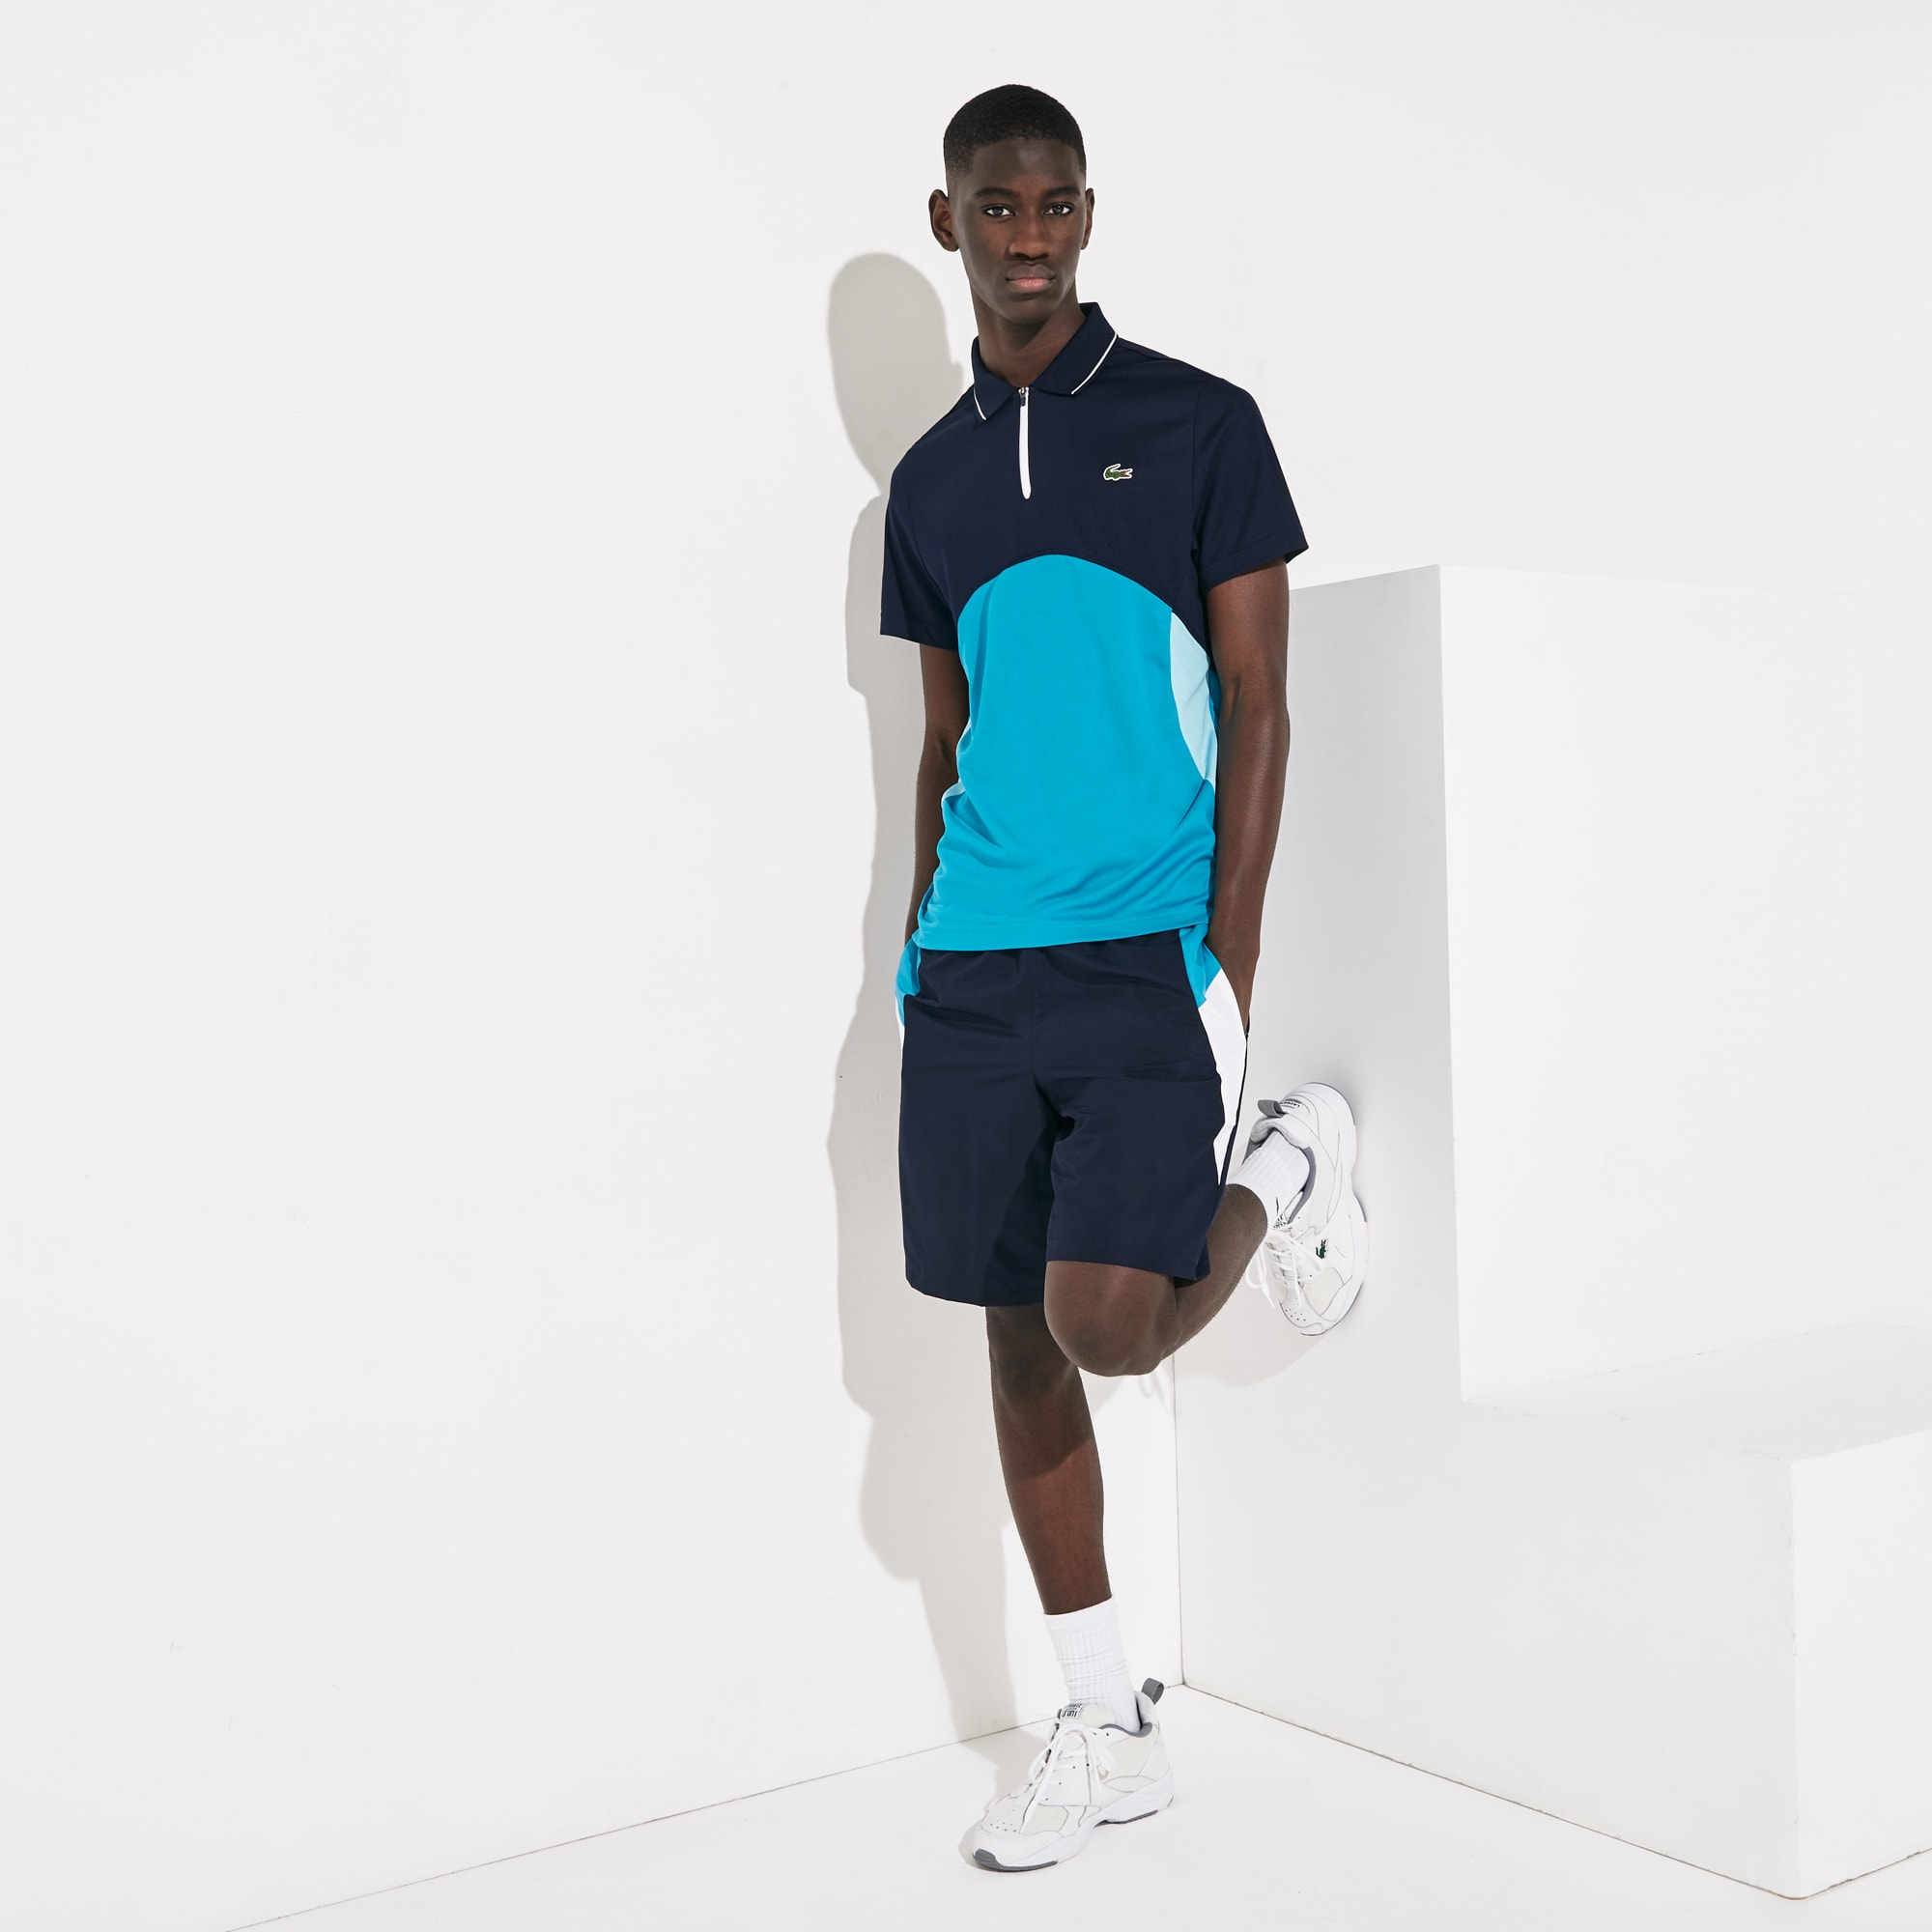 라코스테 Lacoste Mens SPORT Ultra-Dry Pique Zip Tennis Polo Shirt,Navy Blue / Turquoise / White - RWP (Selected colo